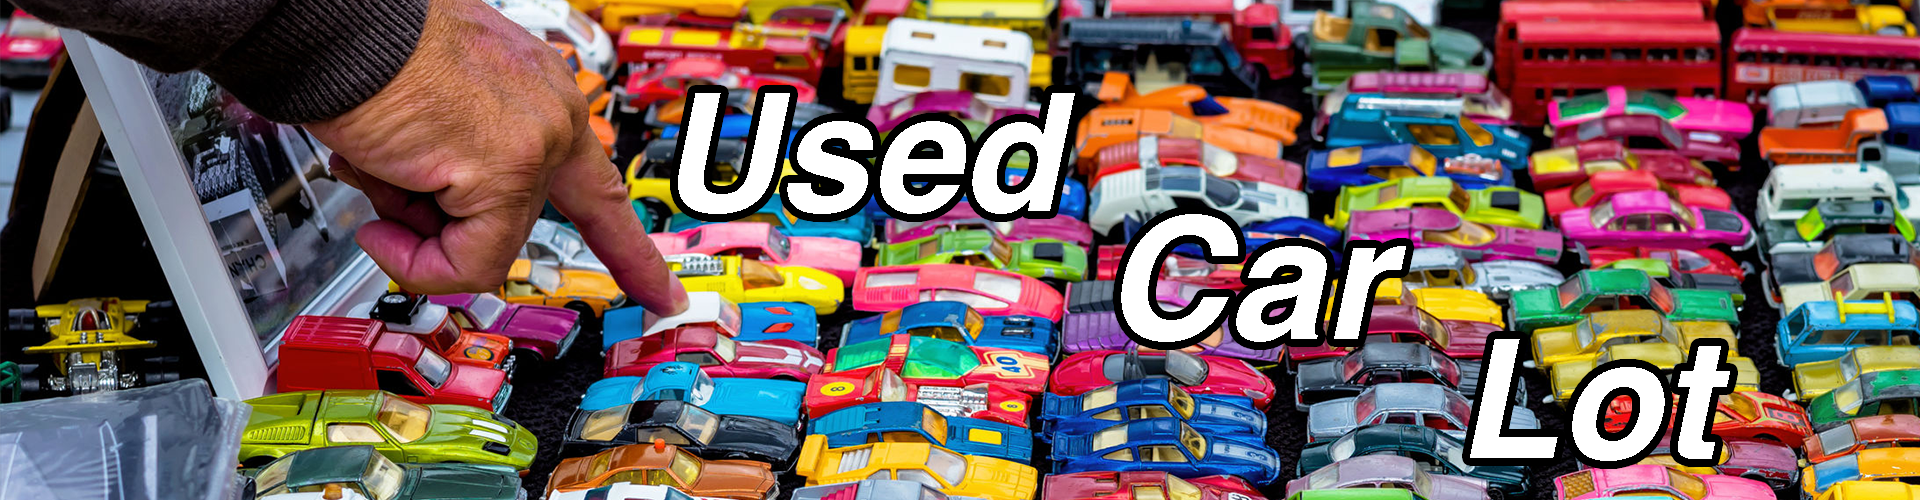 Used Car Lot at Flatoutslotcars.com.au